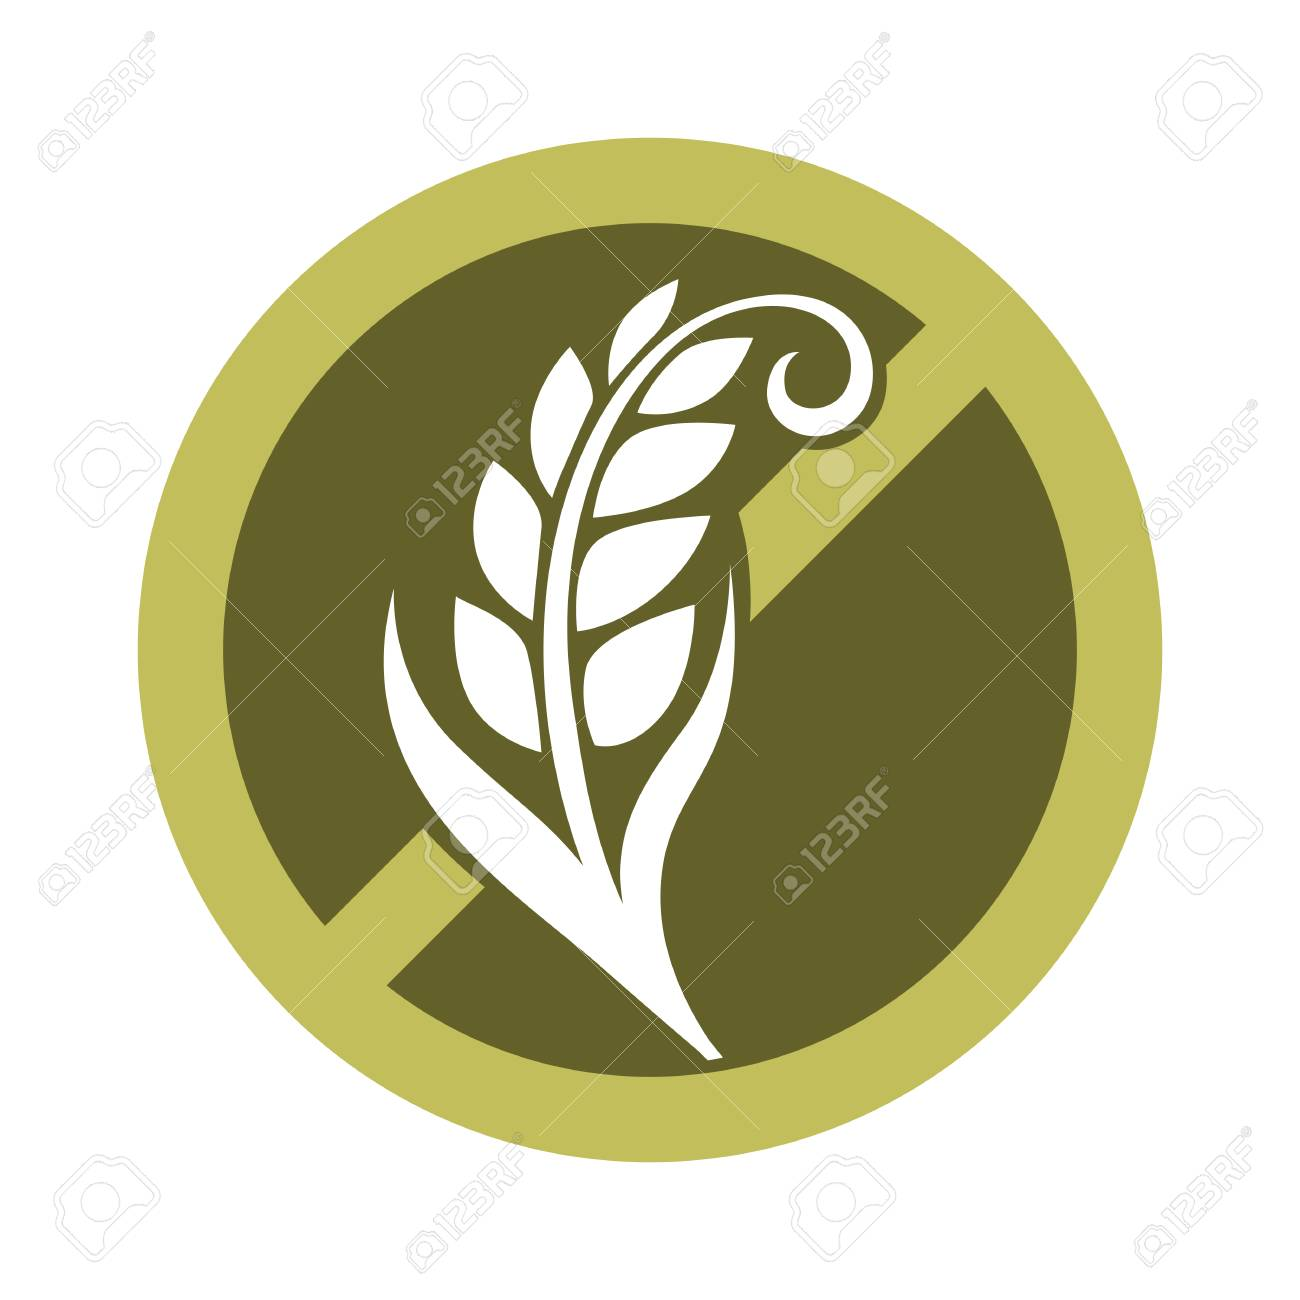 Gluten free substance in cereal grains logo design in prohibiting circle with crossed wheat vector illustration isolated on white. Product without ingredient responsible for elastic texture of dough - 77838909